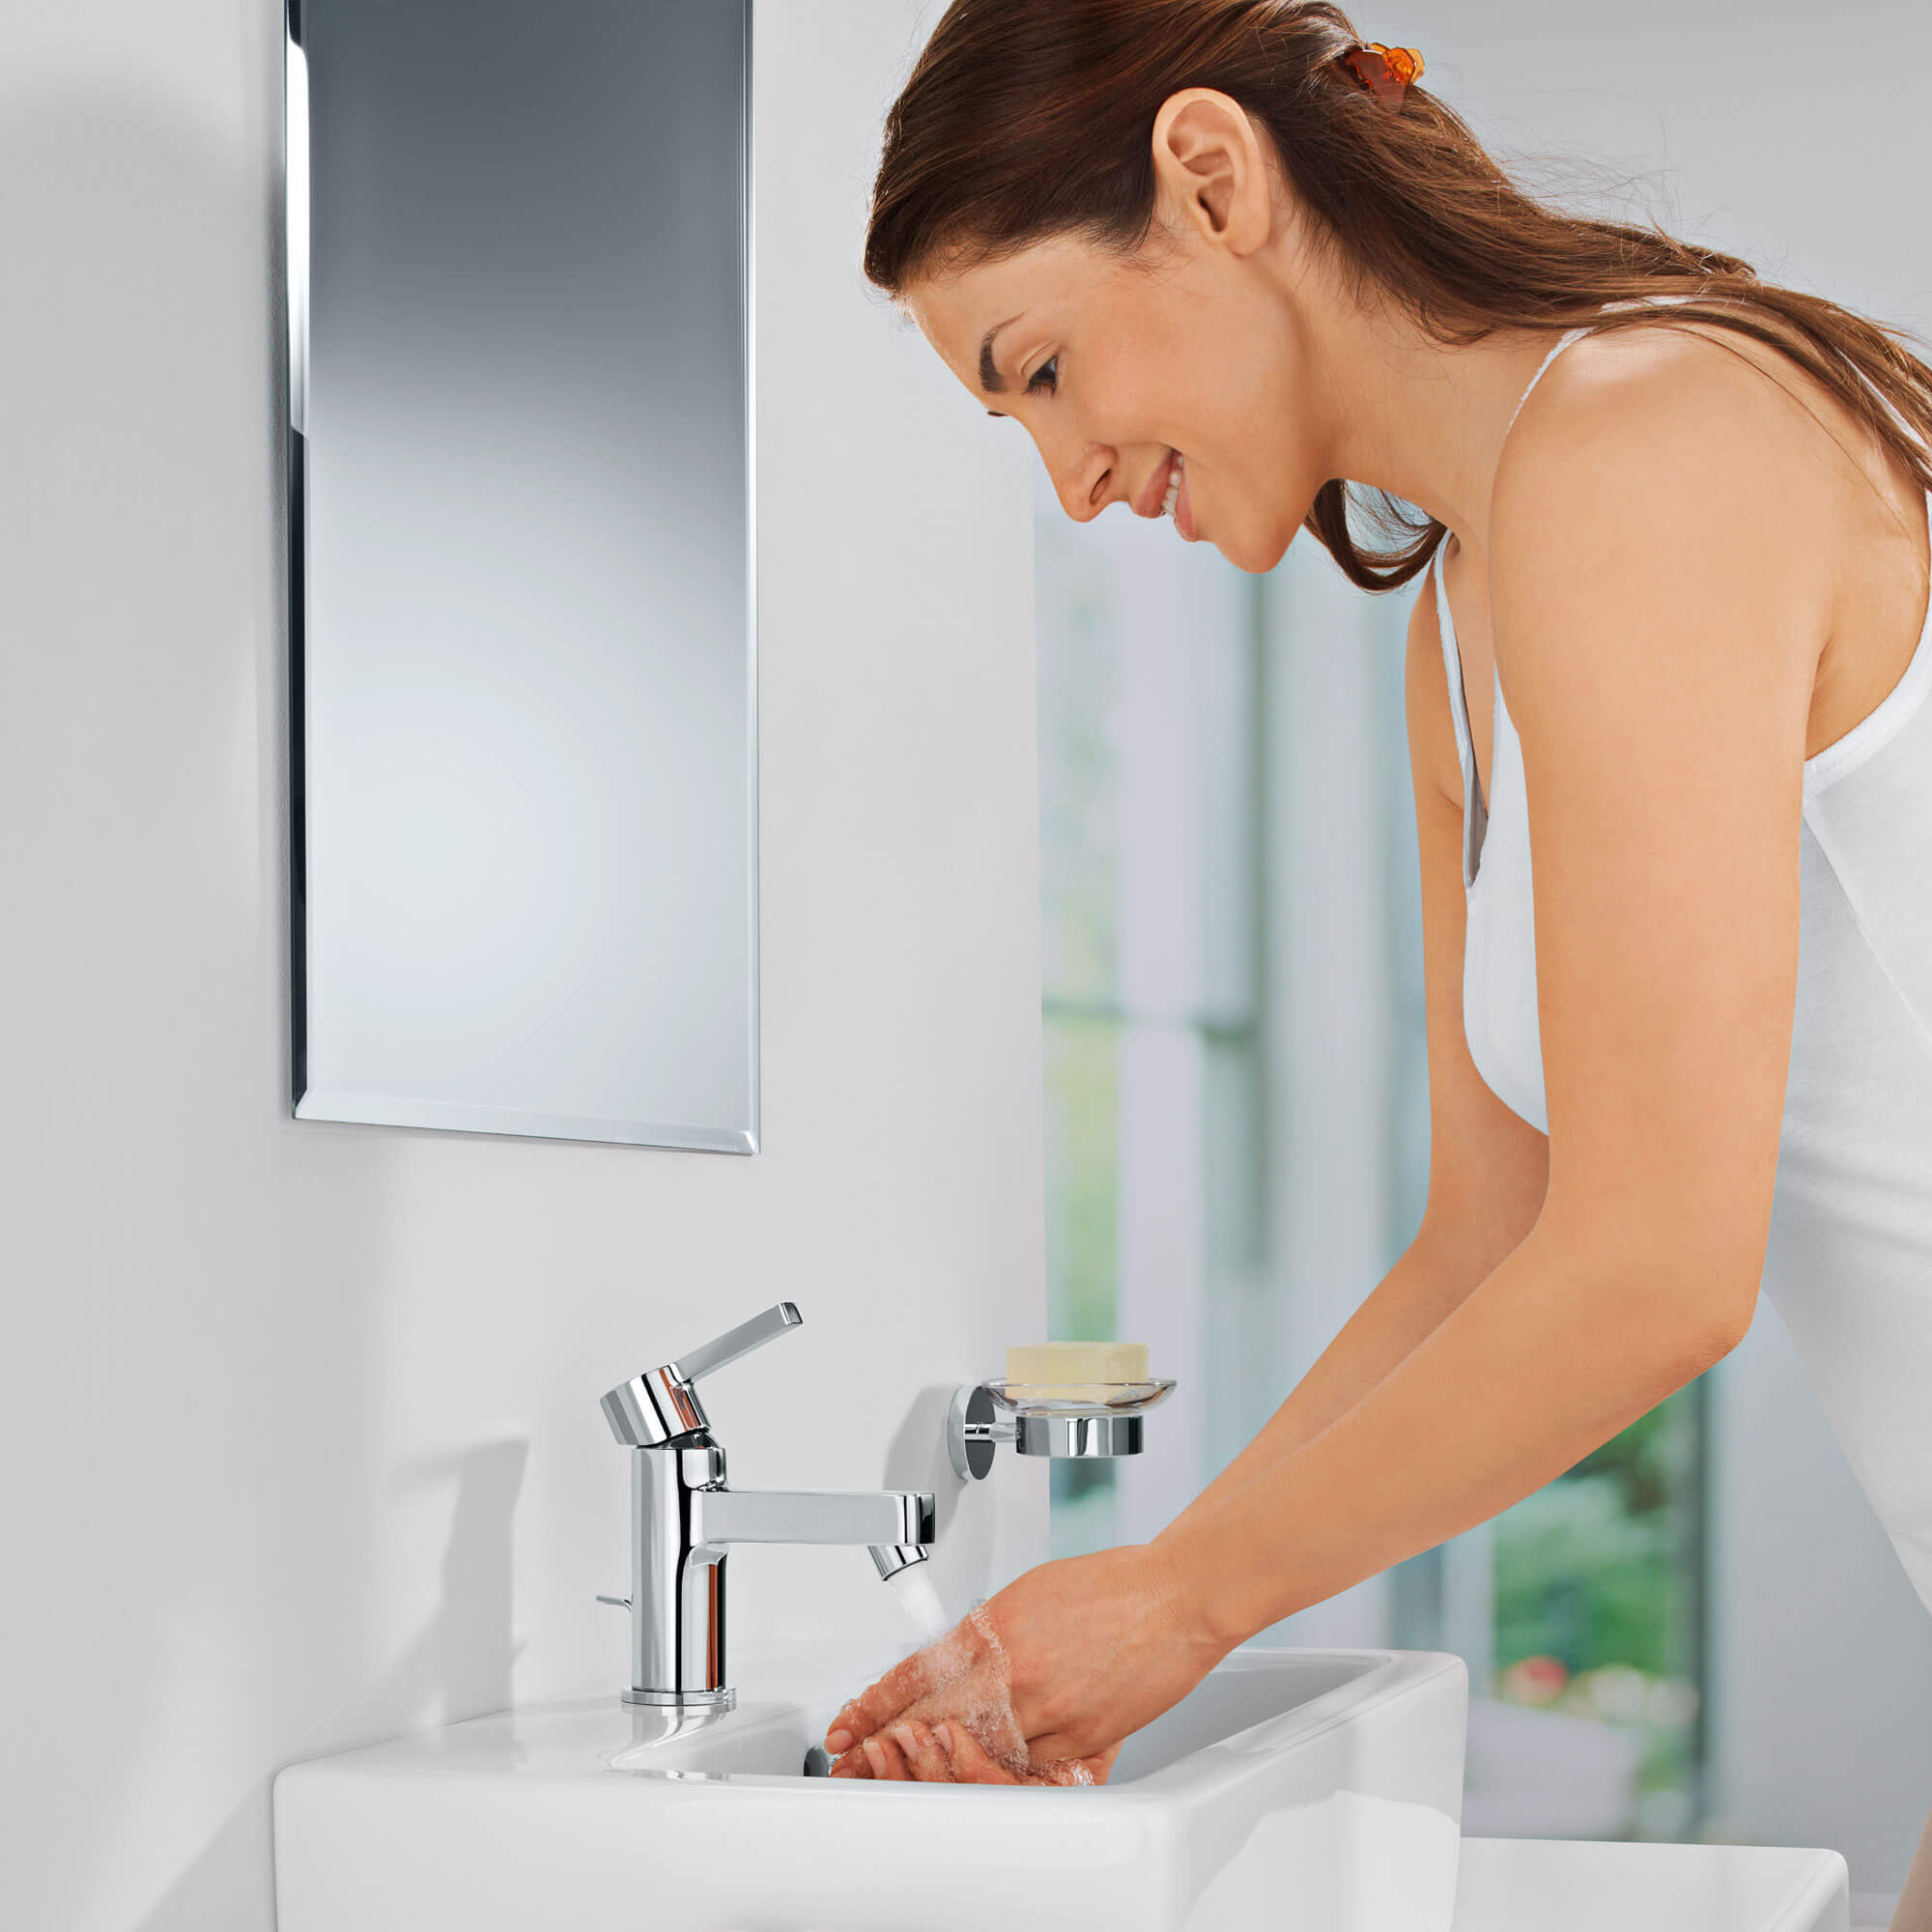 A women washing her hands under a grohe faucet.